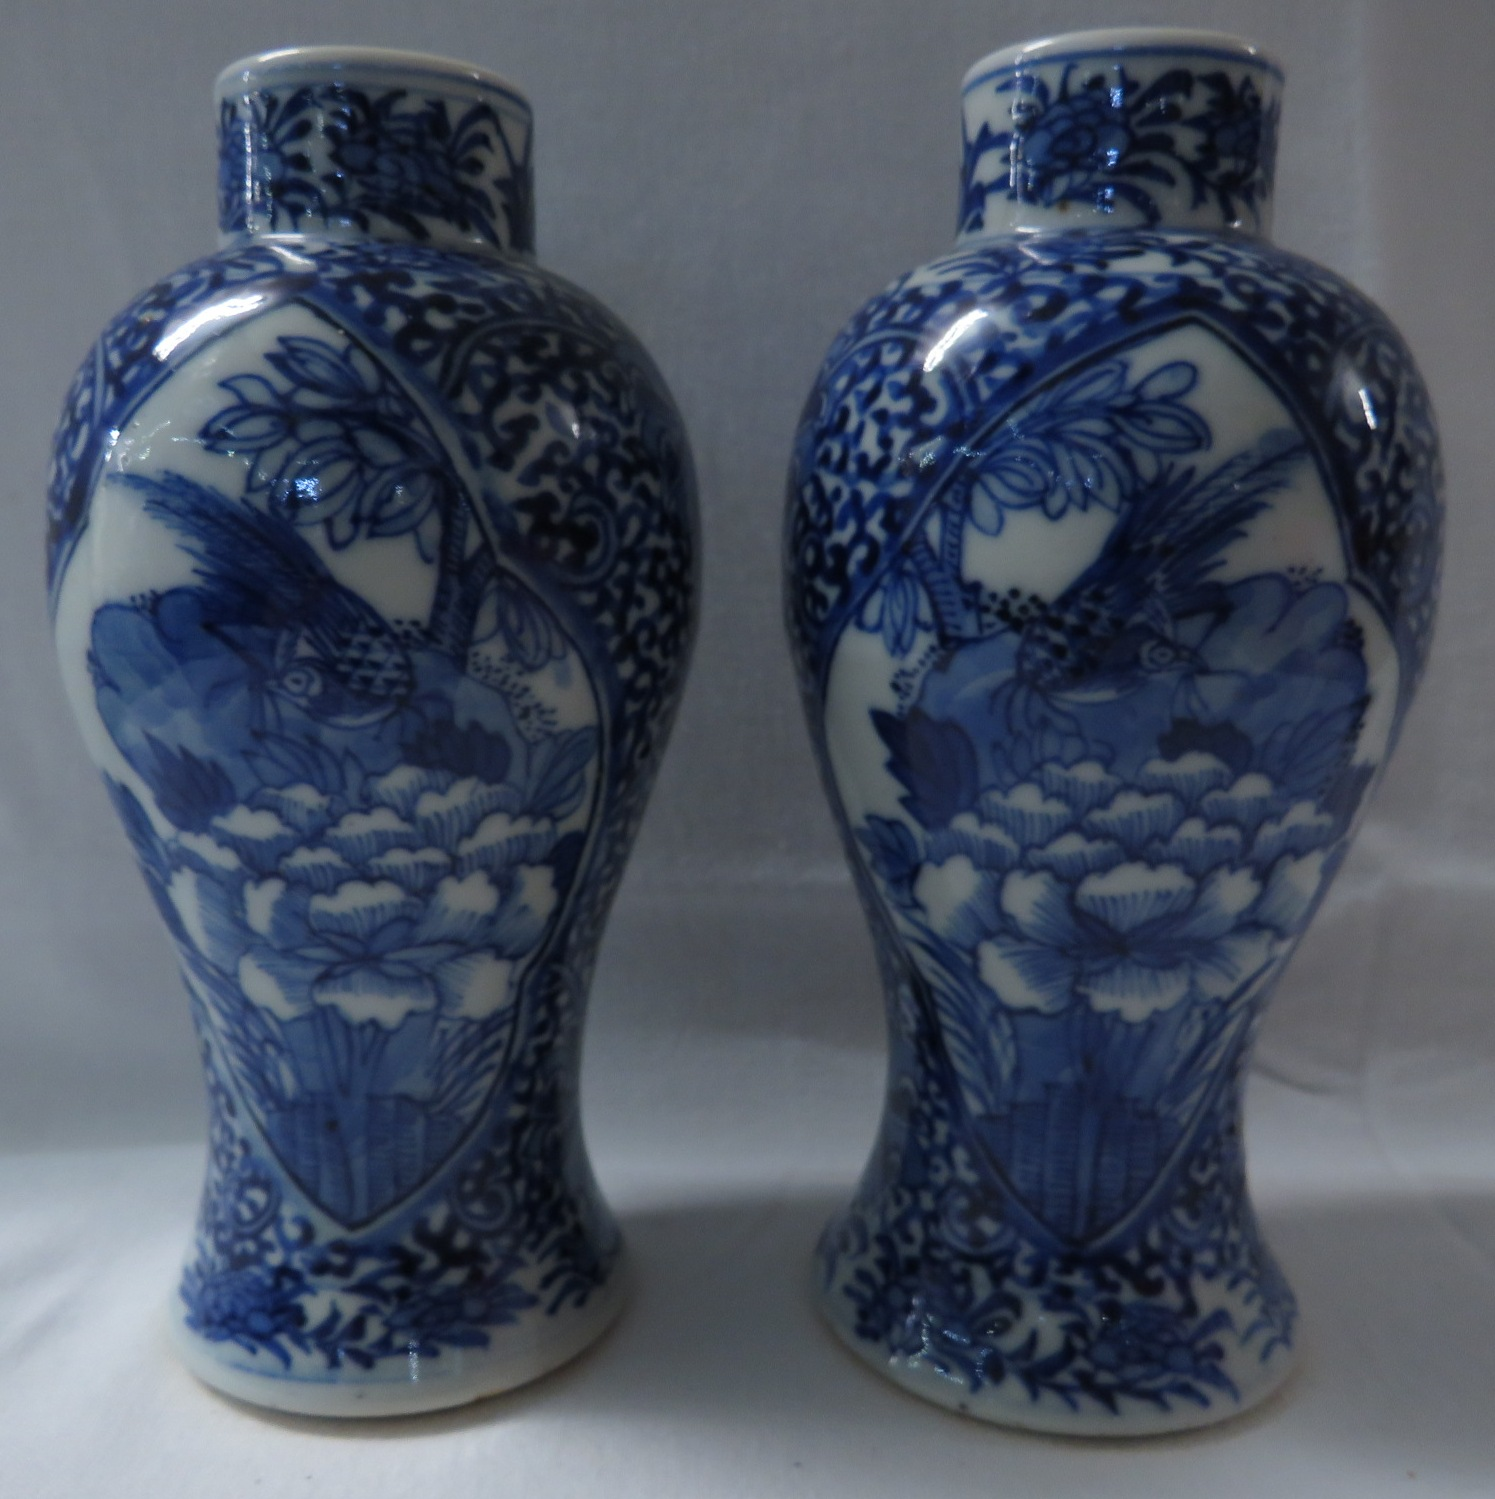 Lot 35 - A pair of Chinese porcelain baluster vases hand painted in underglaze blue with scrolled foliage and